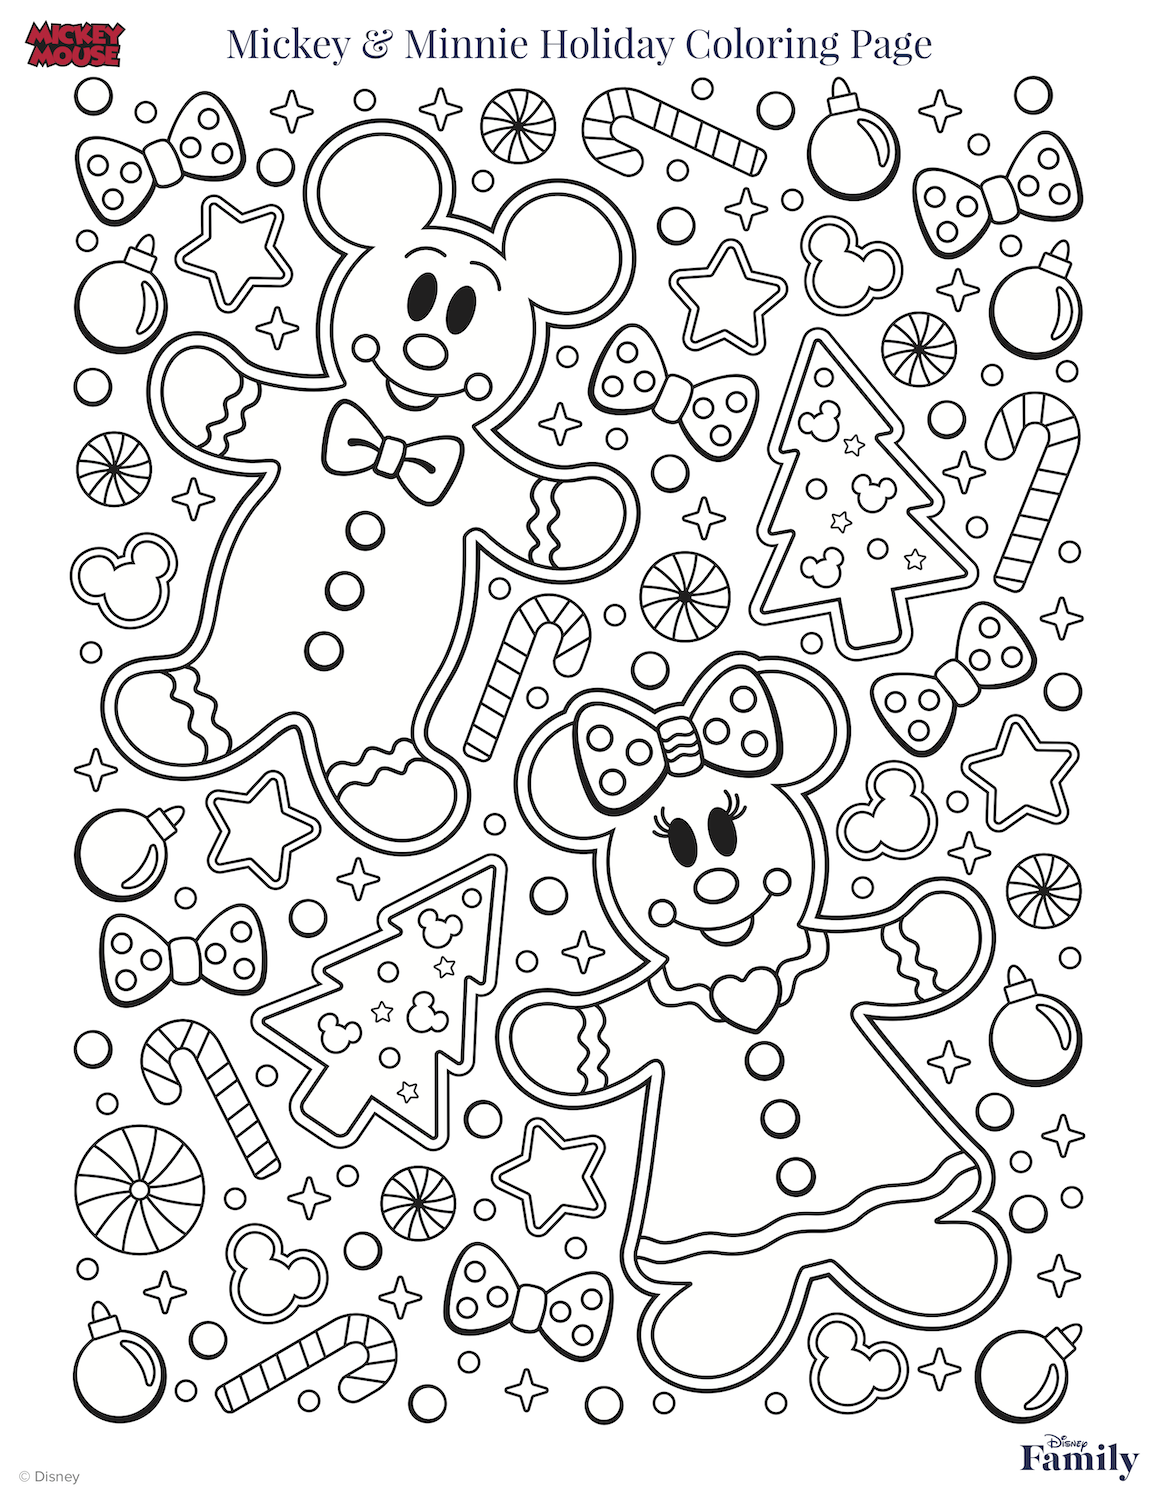 Mickey Christmas Coloring Page Christmas Coloring Pages Kids Christmas Coloring Pages Disney Coloring Pages